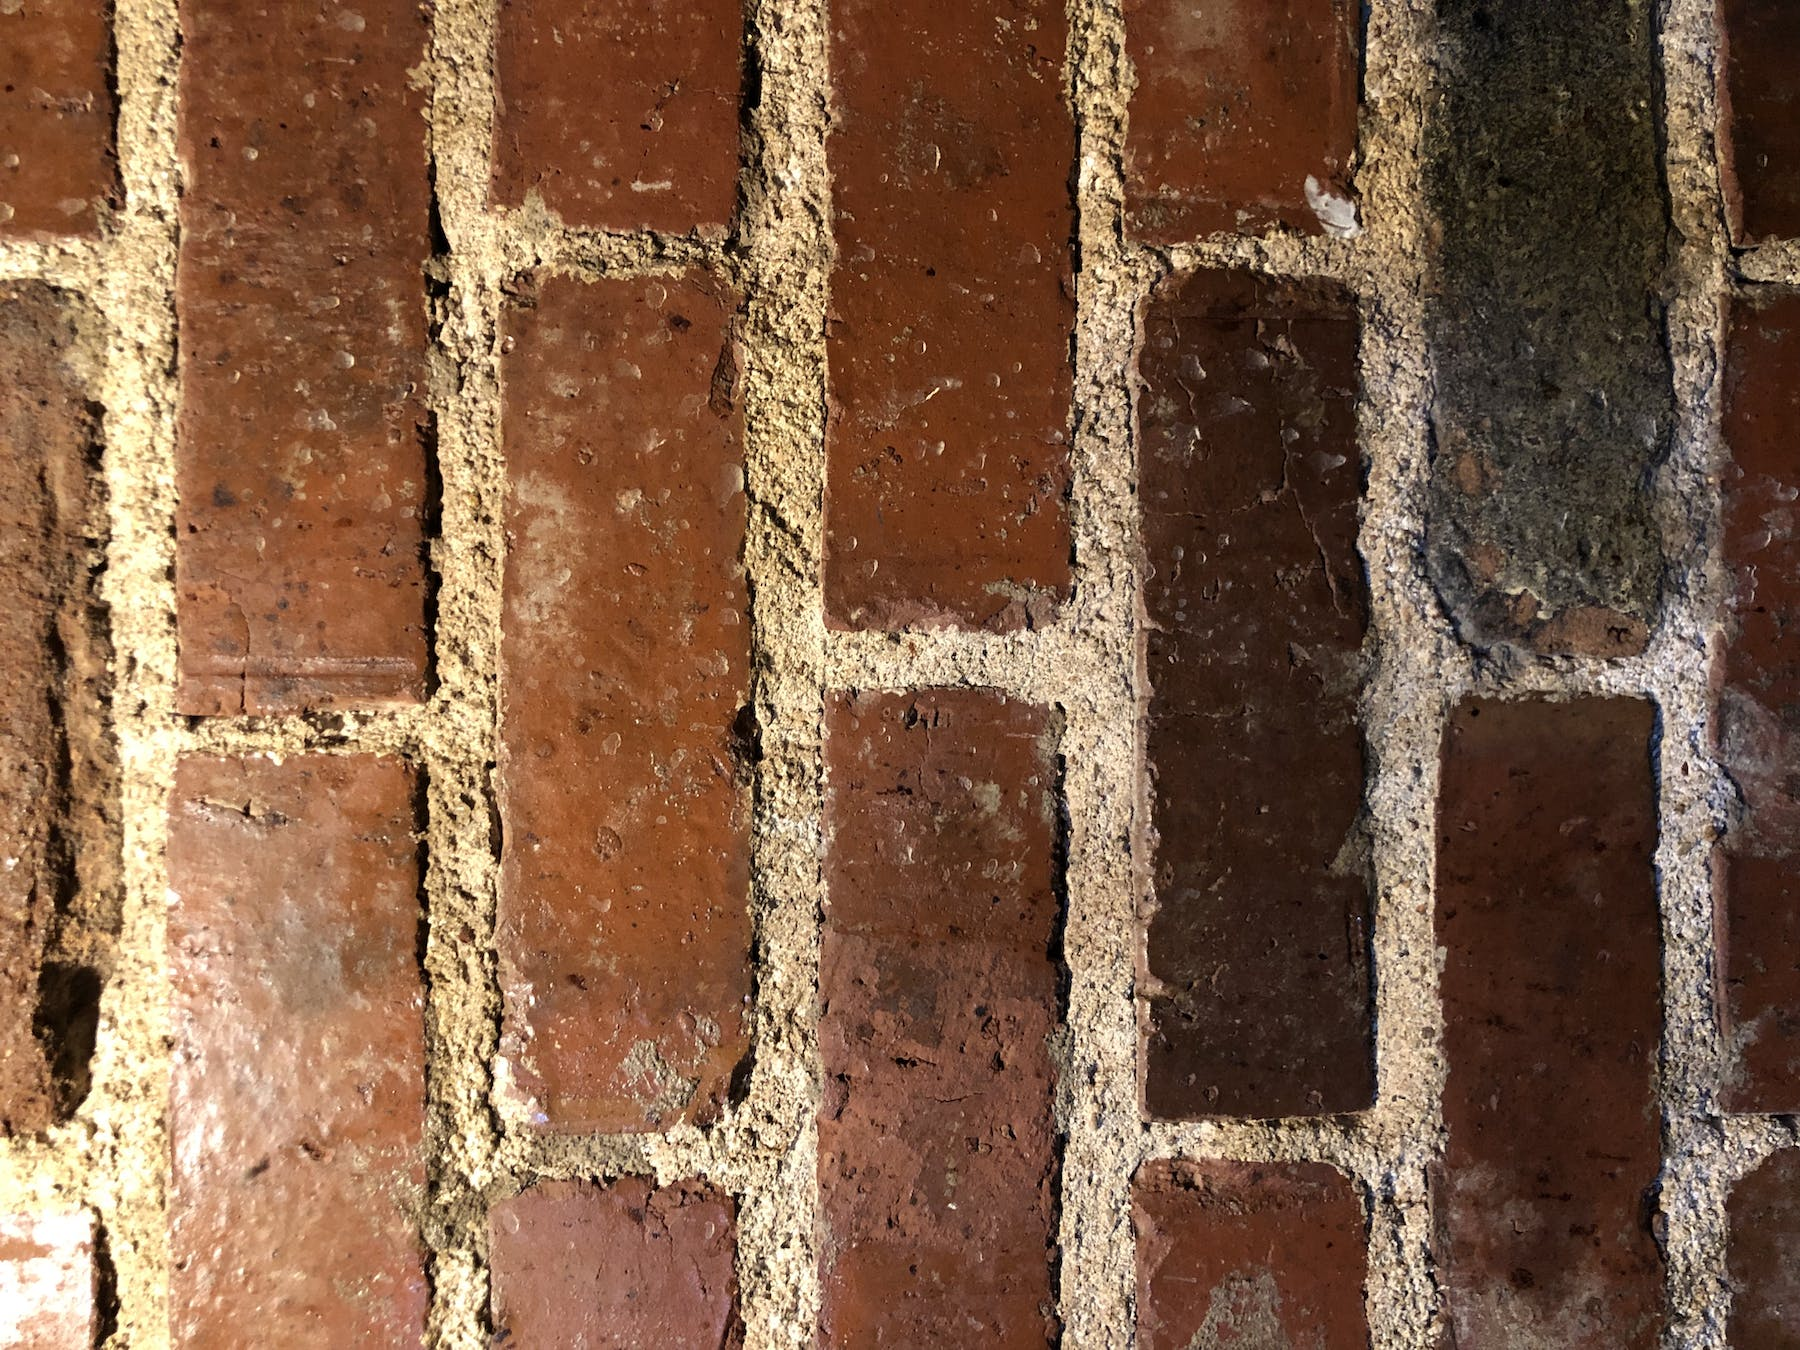 a close up of a brick wall